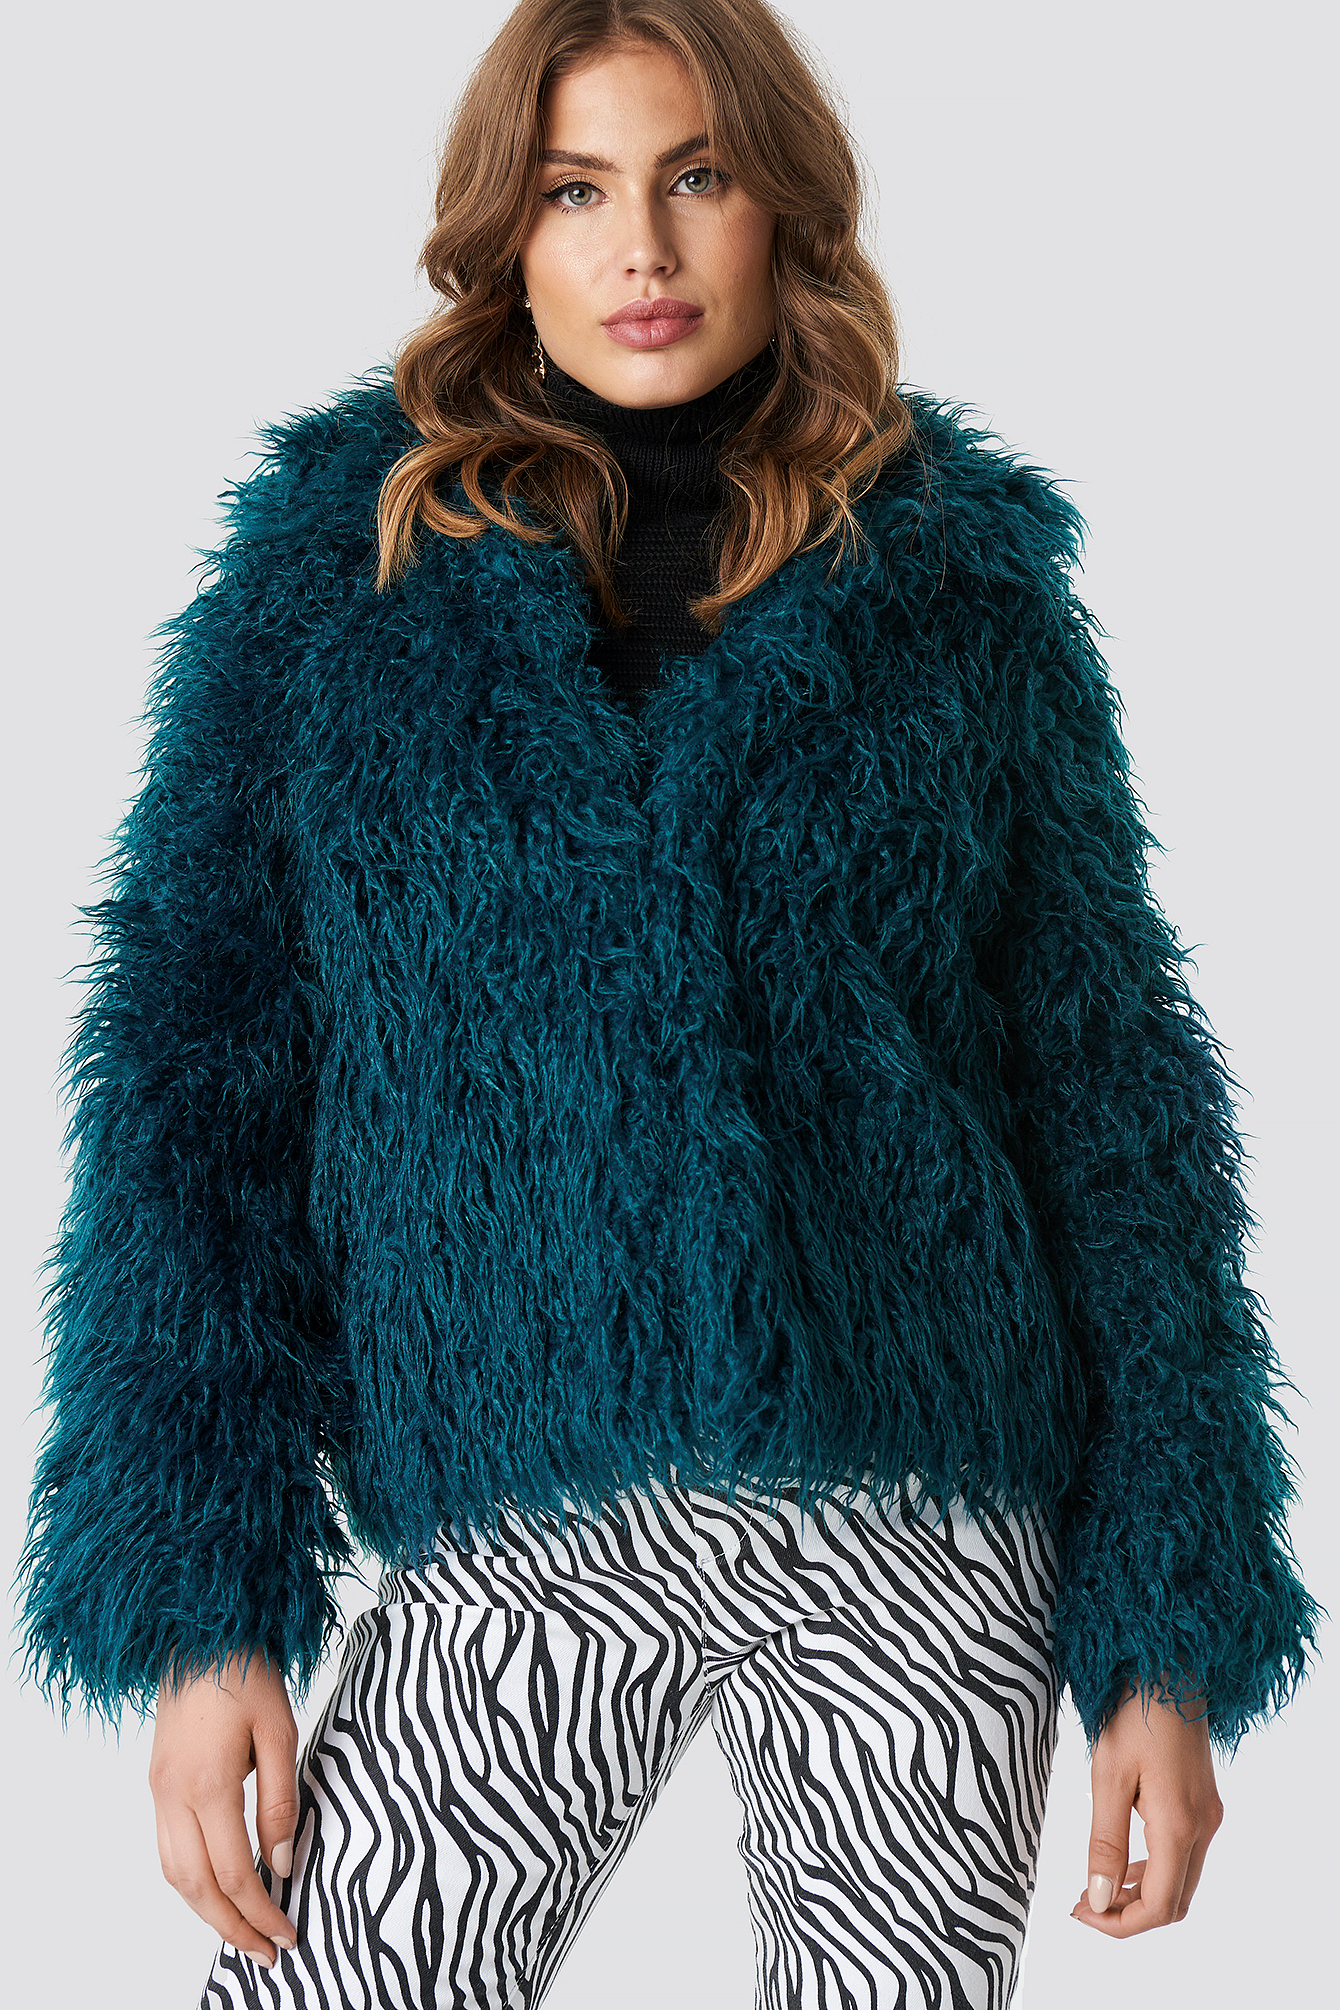 na-kd -  Faux Fur Short Jacket - Green